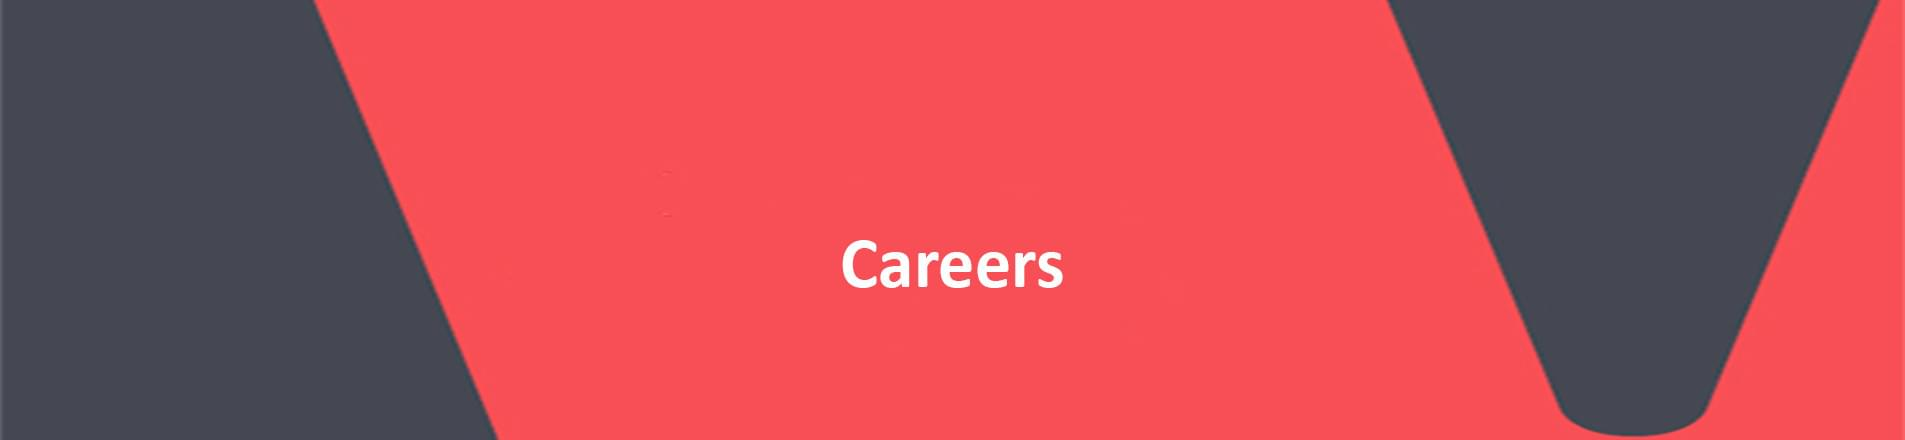 The word Careers on red VERCIDA branded background.